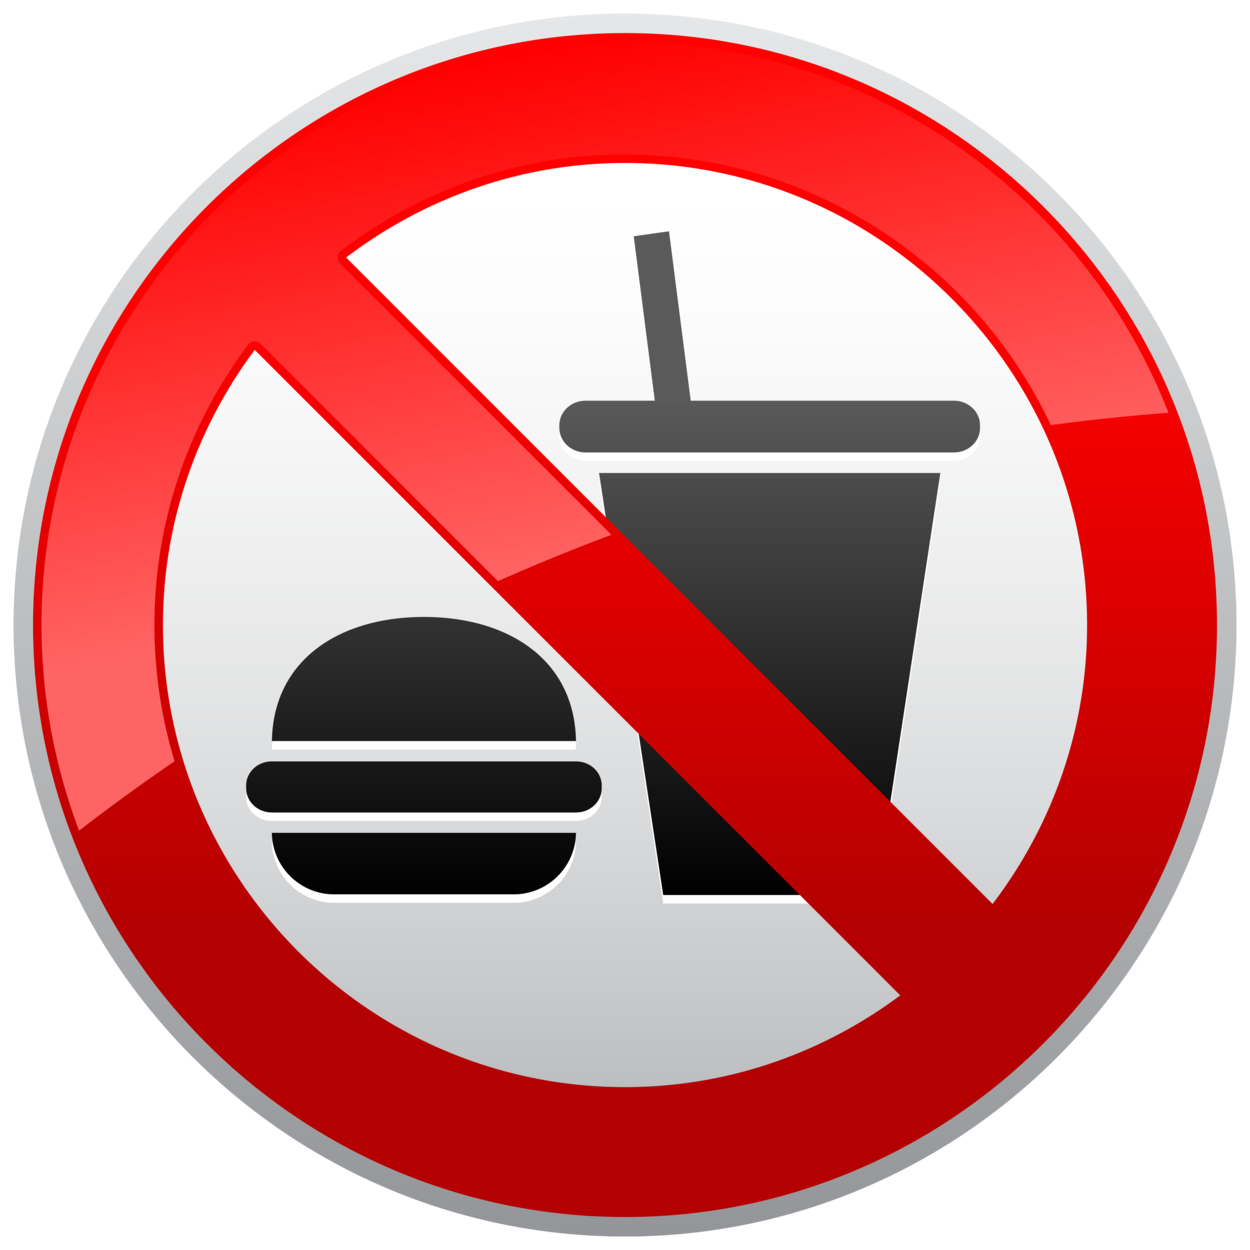 royalty free Smoking clipart juvenile. No cigarette free on